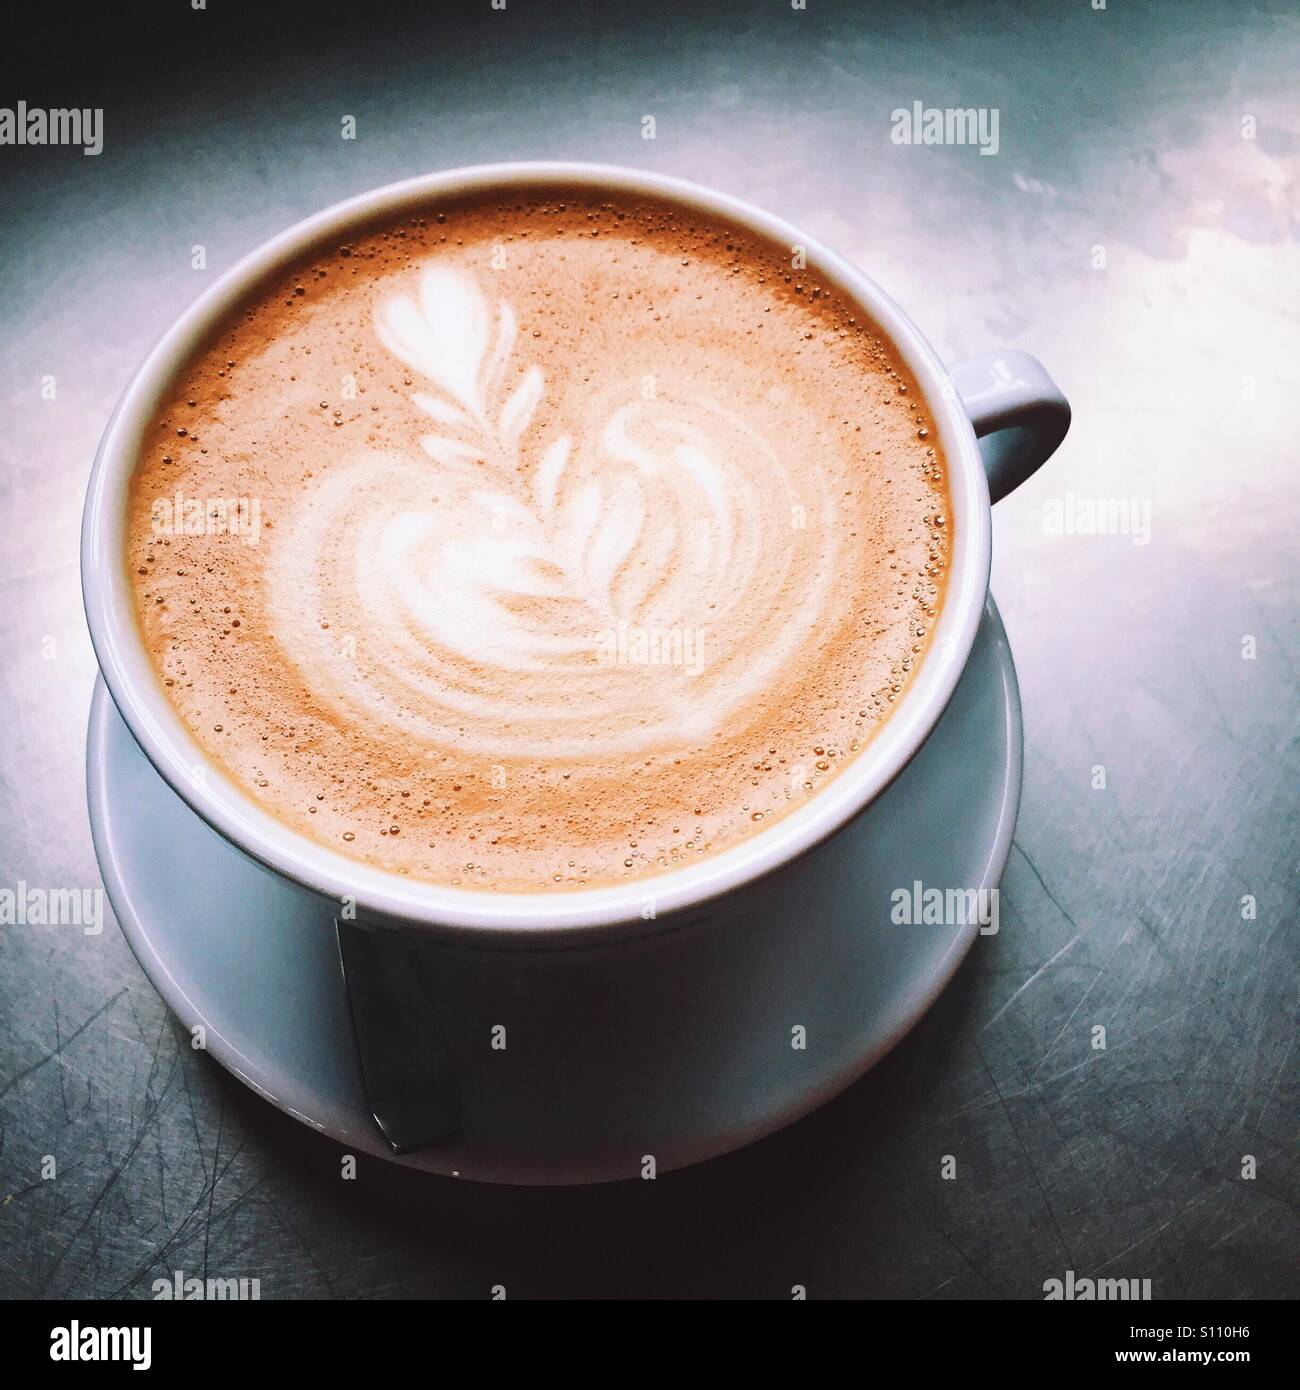 An overhead close-up shot of a fresh latte coffee beverage on a metal table top surface. A simple, clean composition. - Stock Image